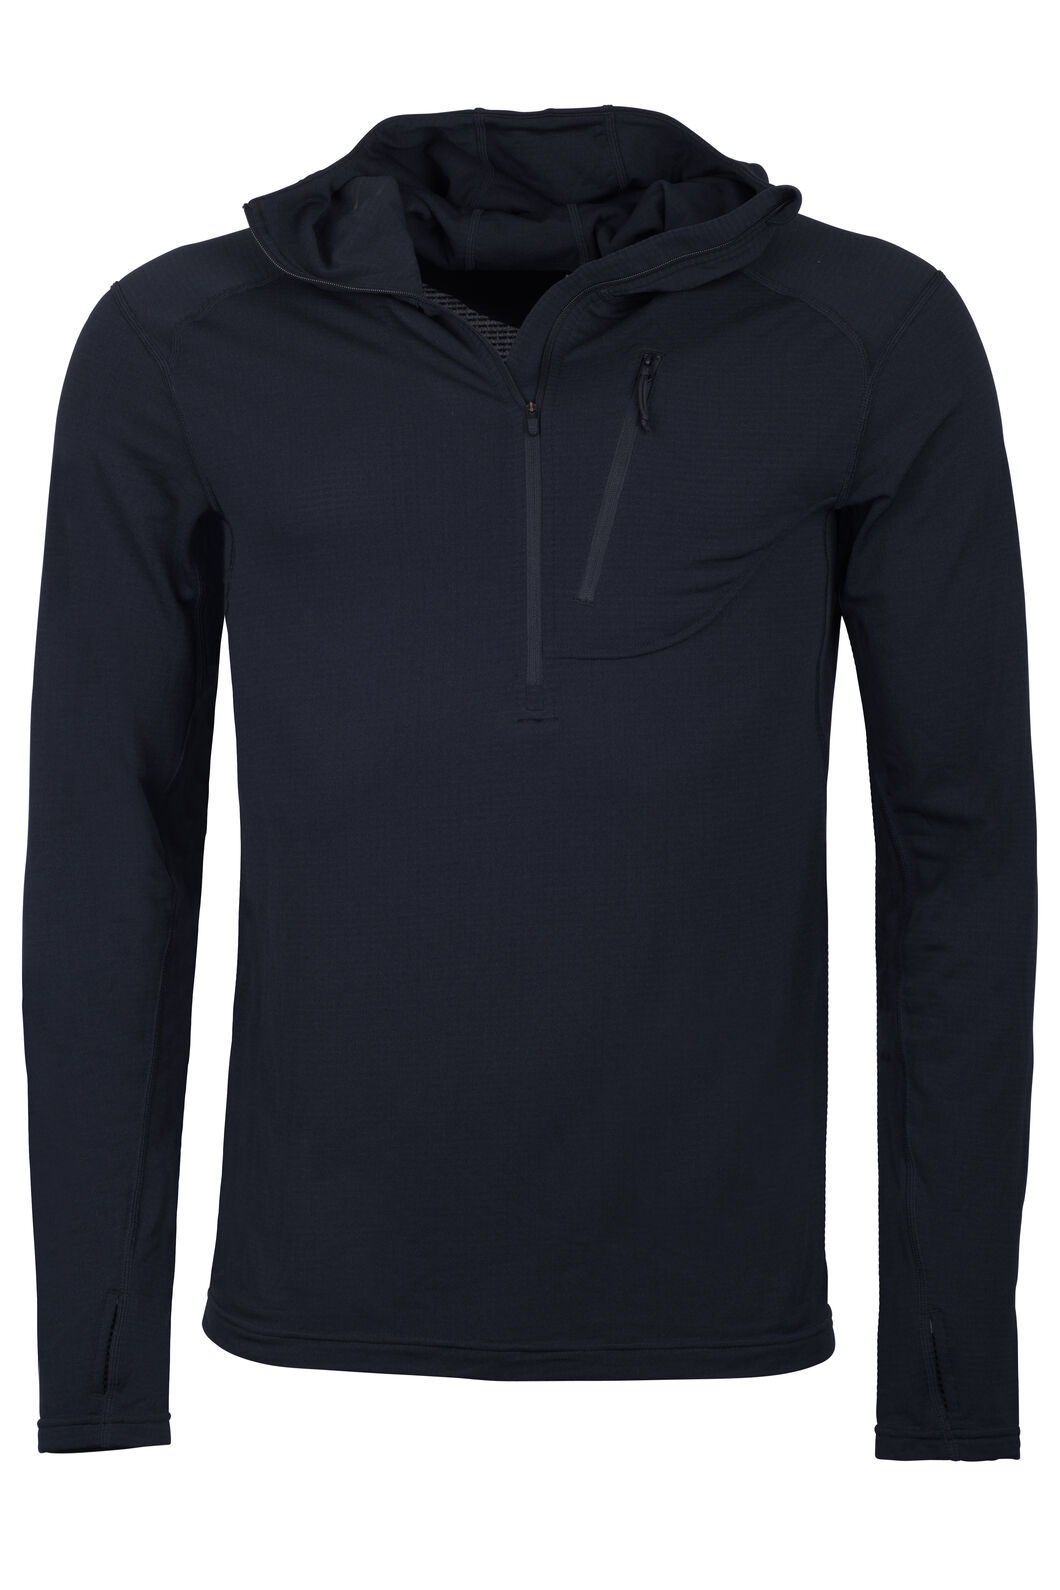 Macpac ProThermal Hooded Top - Men's, Black, hi-res